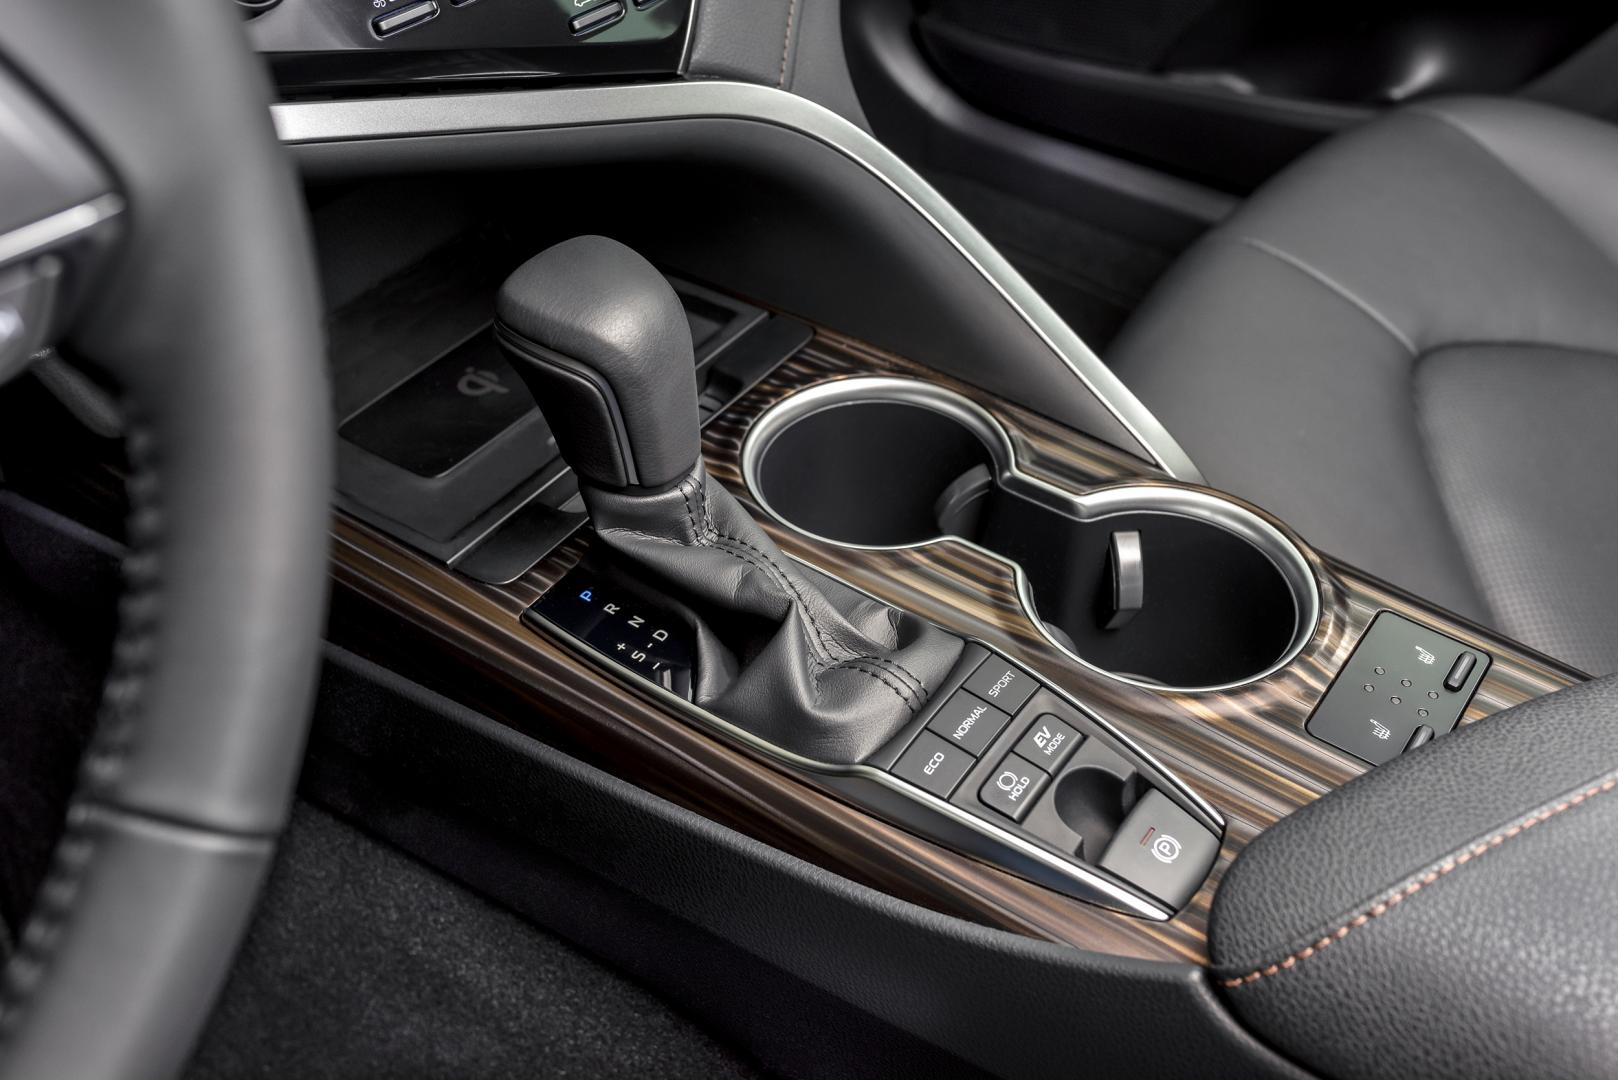 Toyota Camry Hybrid Premium - test 2019 interieur middenconsole pook automaat